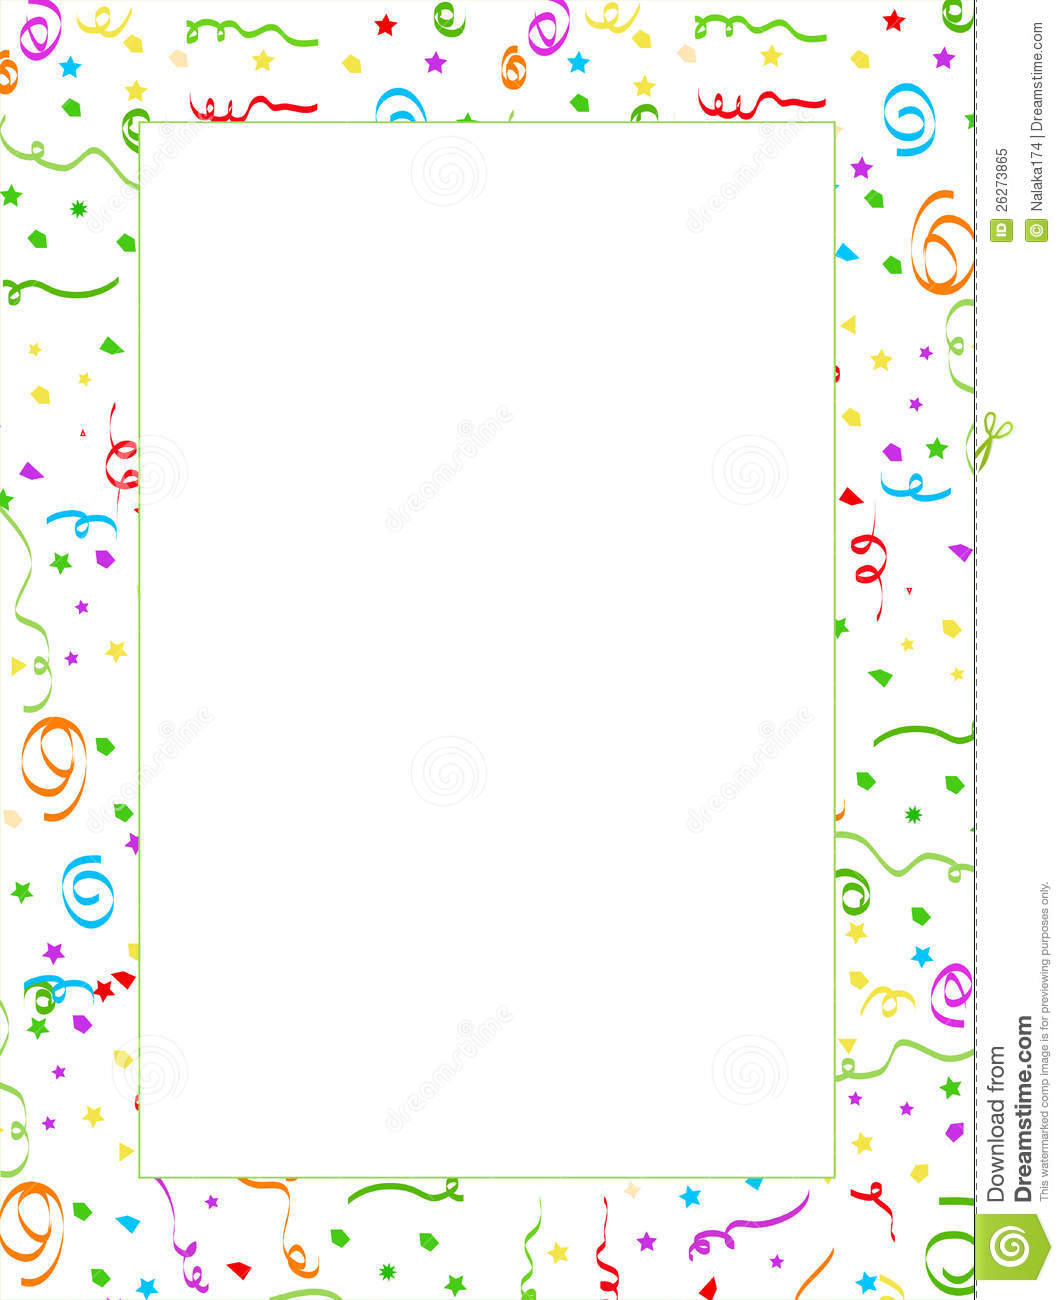 Royalty Free Stock Photo: Confetti page. Image: 26273865